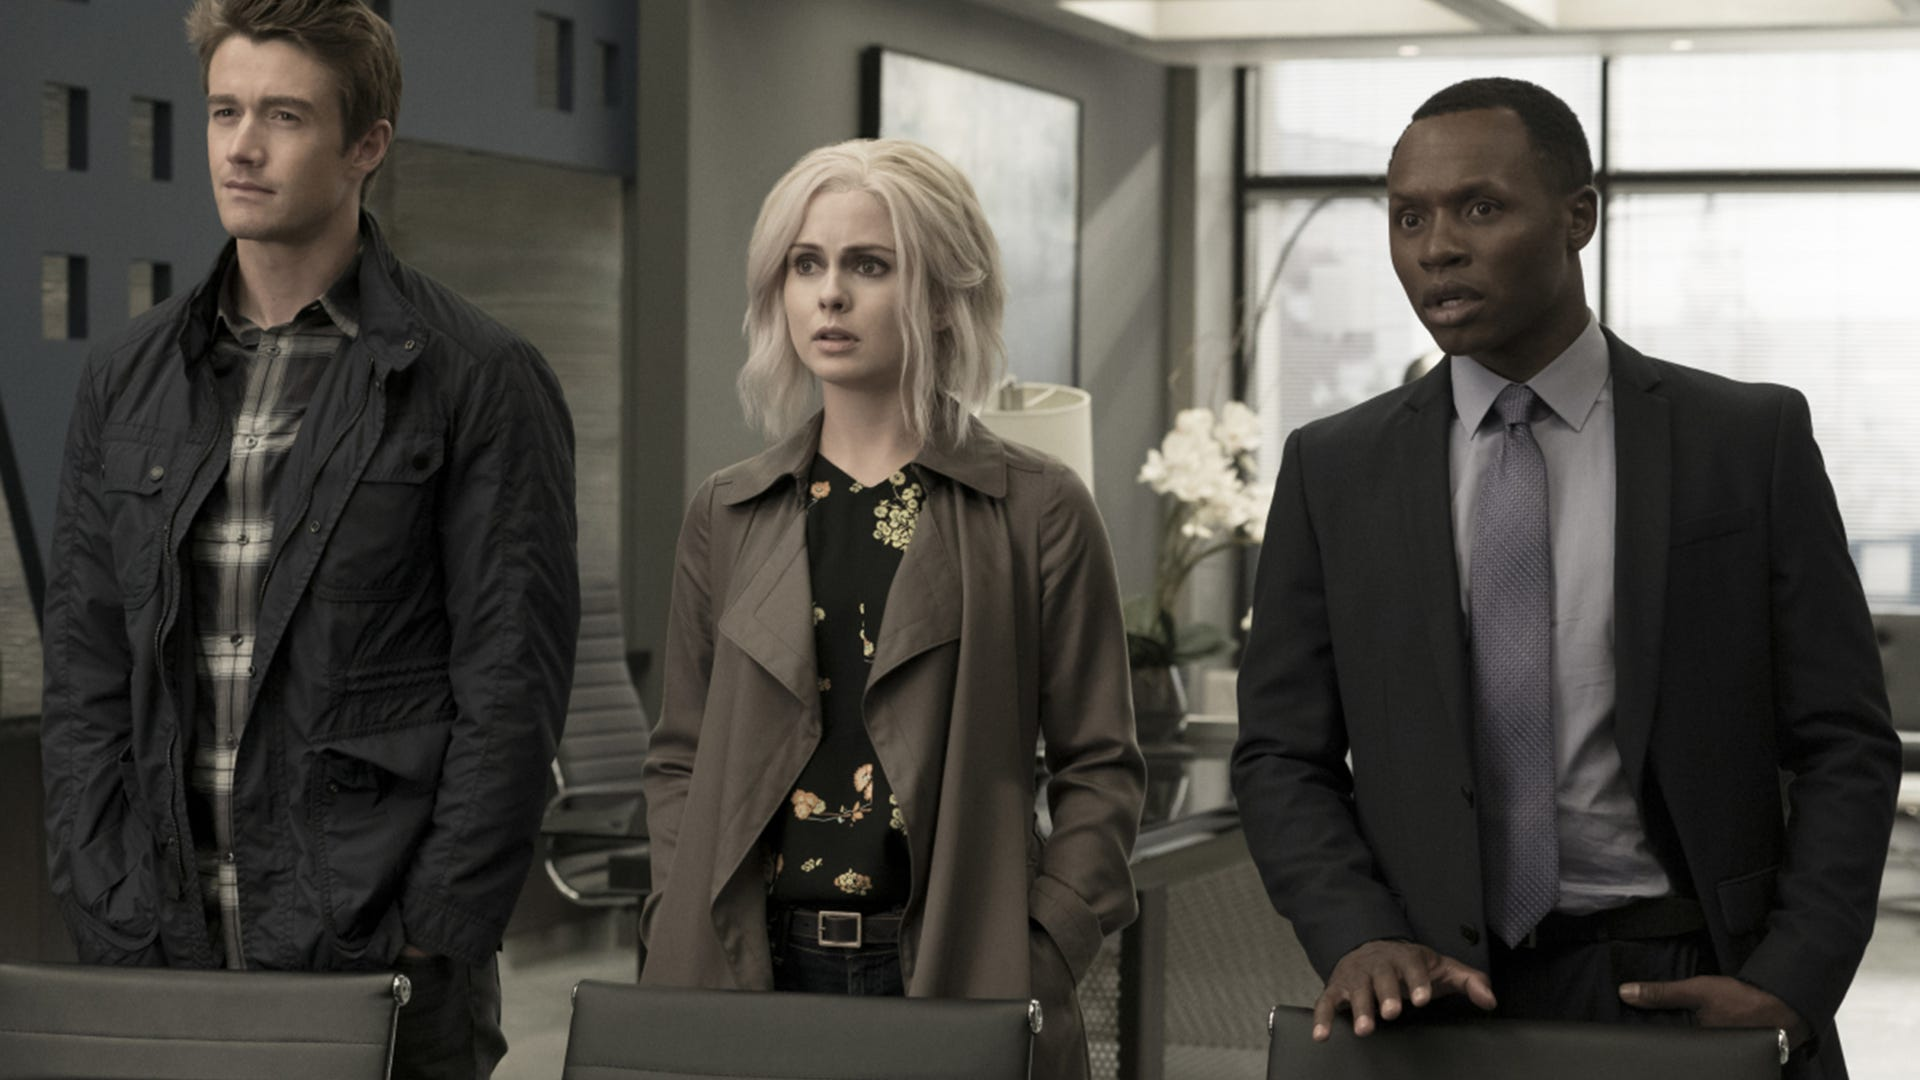 Robert Buckley, Rose McIver and Malcolm Goodwin, iZombie